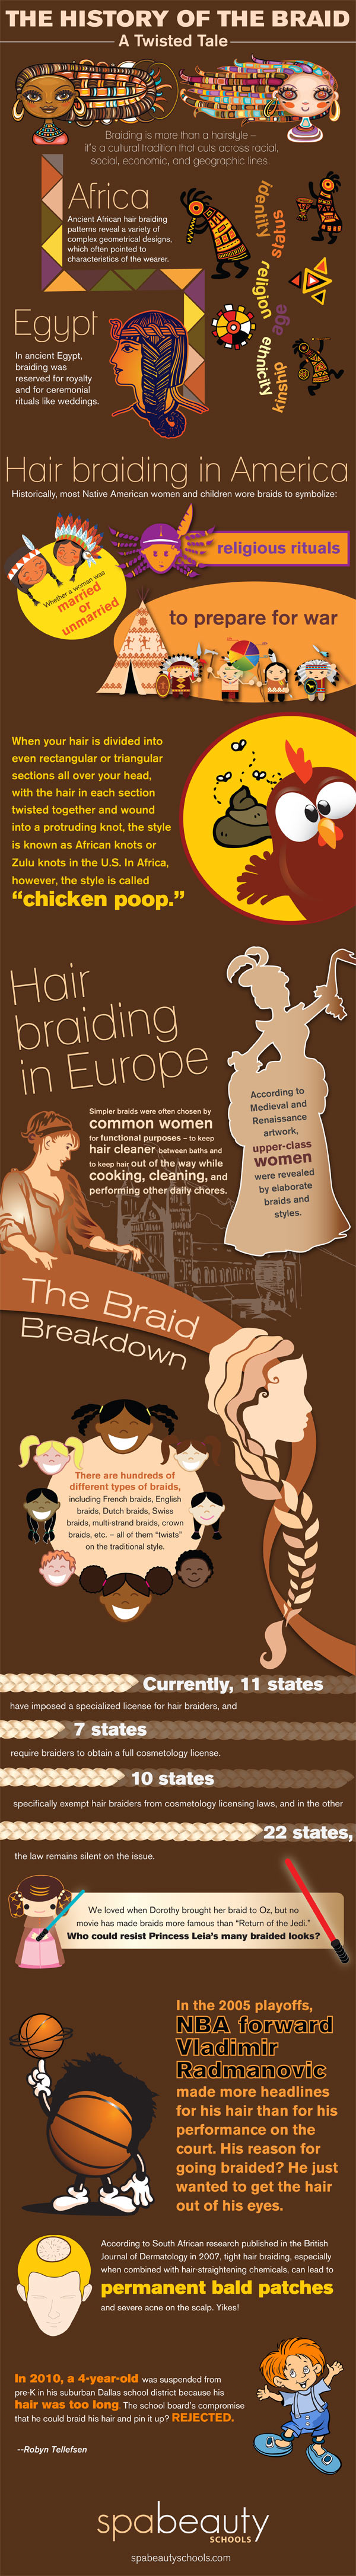 Braid Infographic